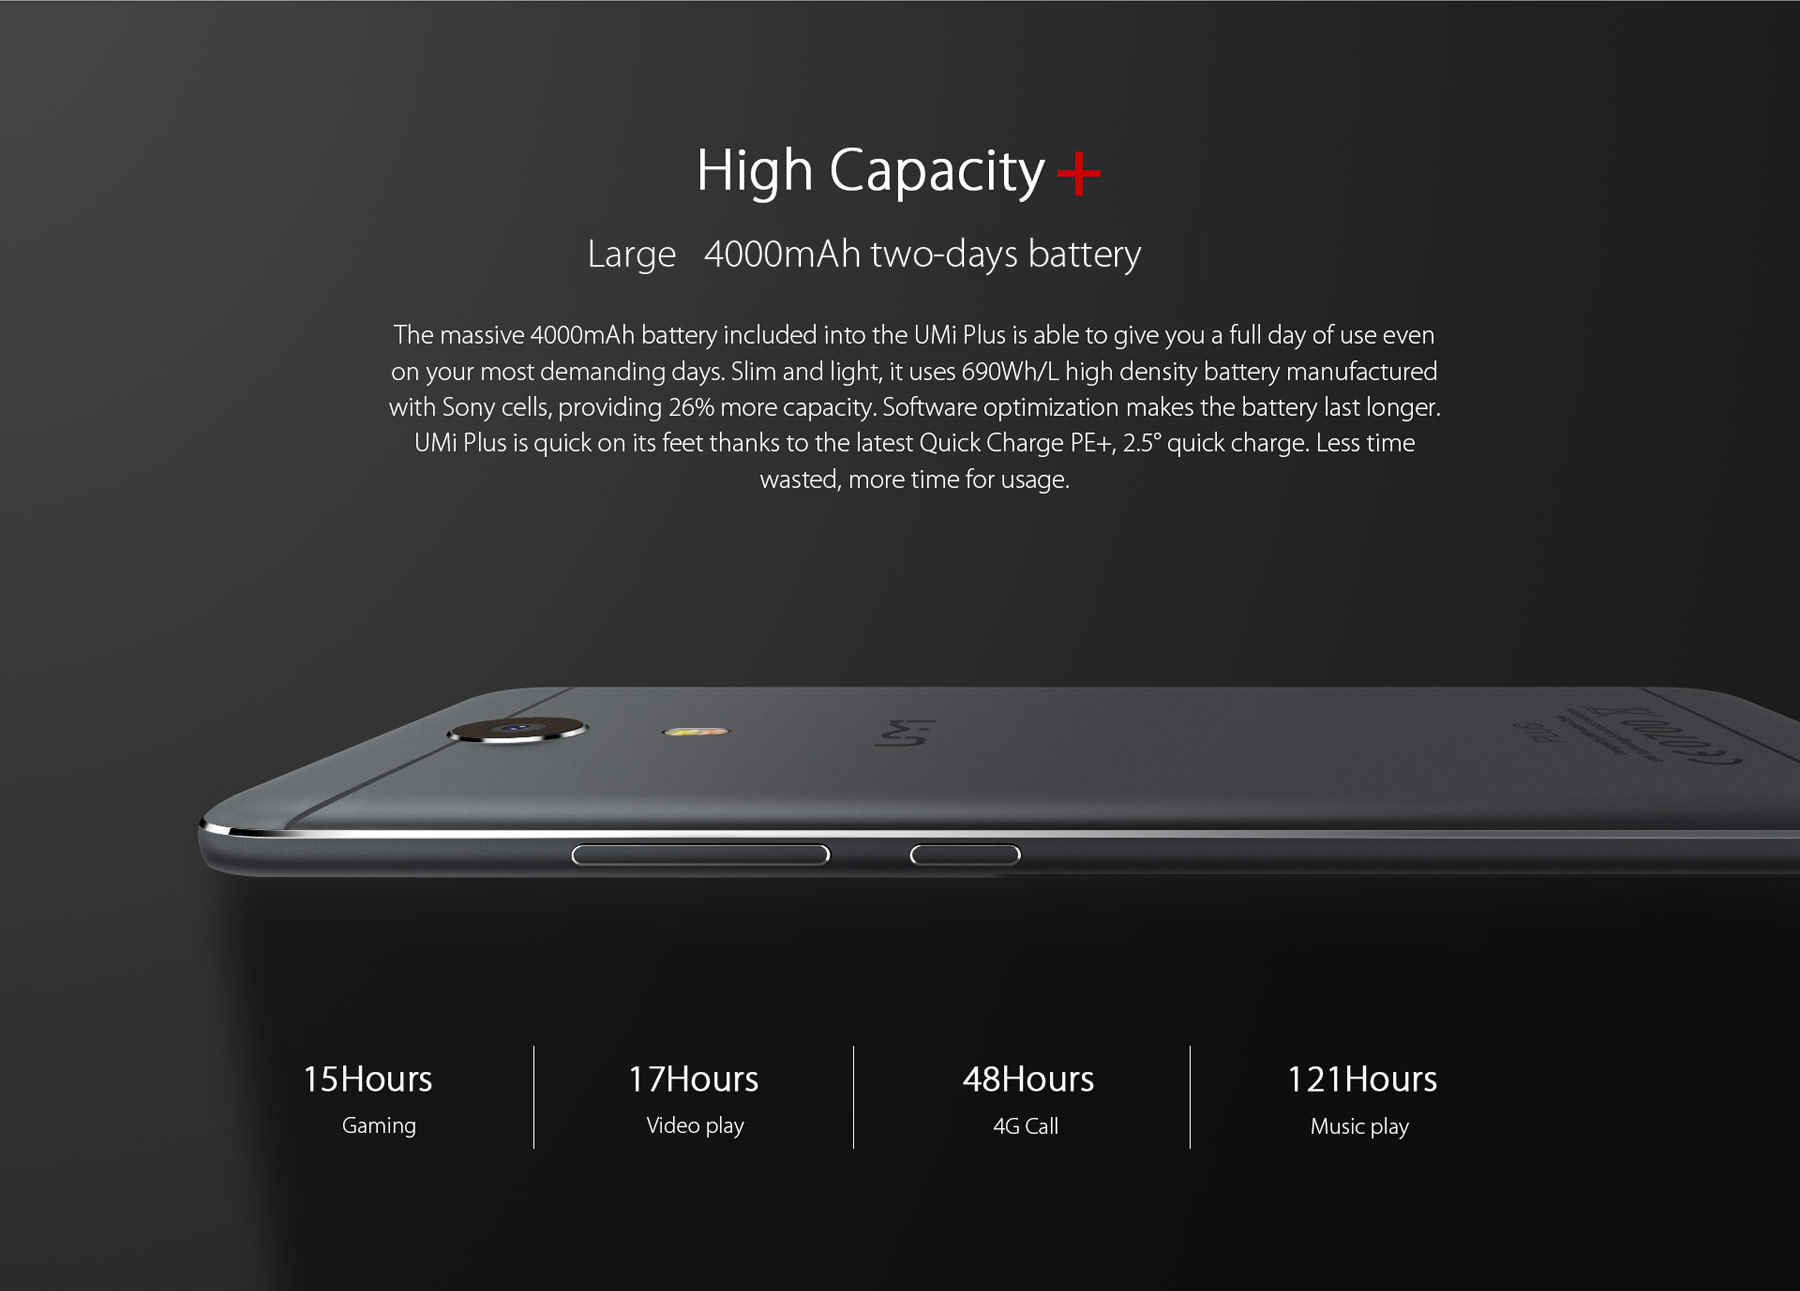 Umi Plus 5.5 inch Android 6.0 4G Phablet Helio P10 Octa Core 1.8GHz 4GB RAM 32GB ROM Fingerprint Scanner Two-tone Flashlight Type-C HiFi